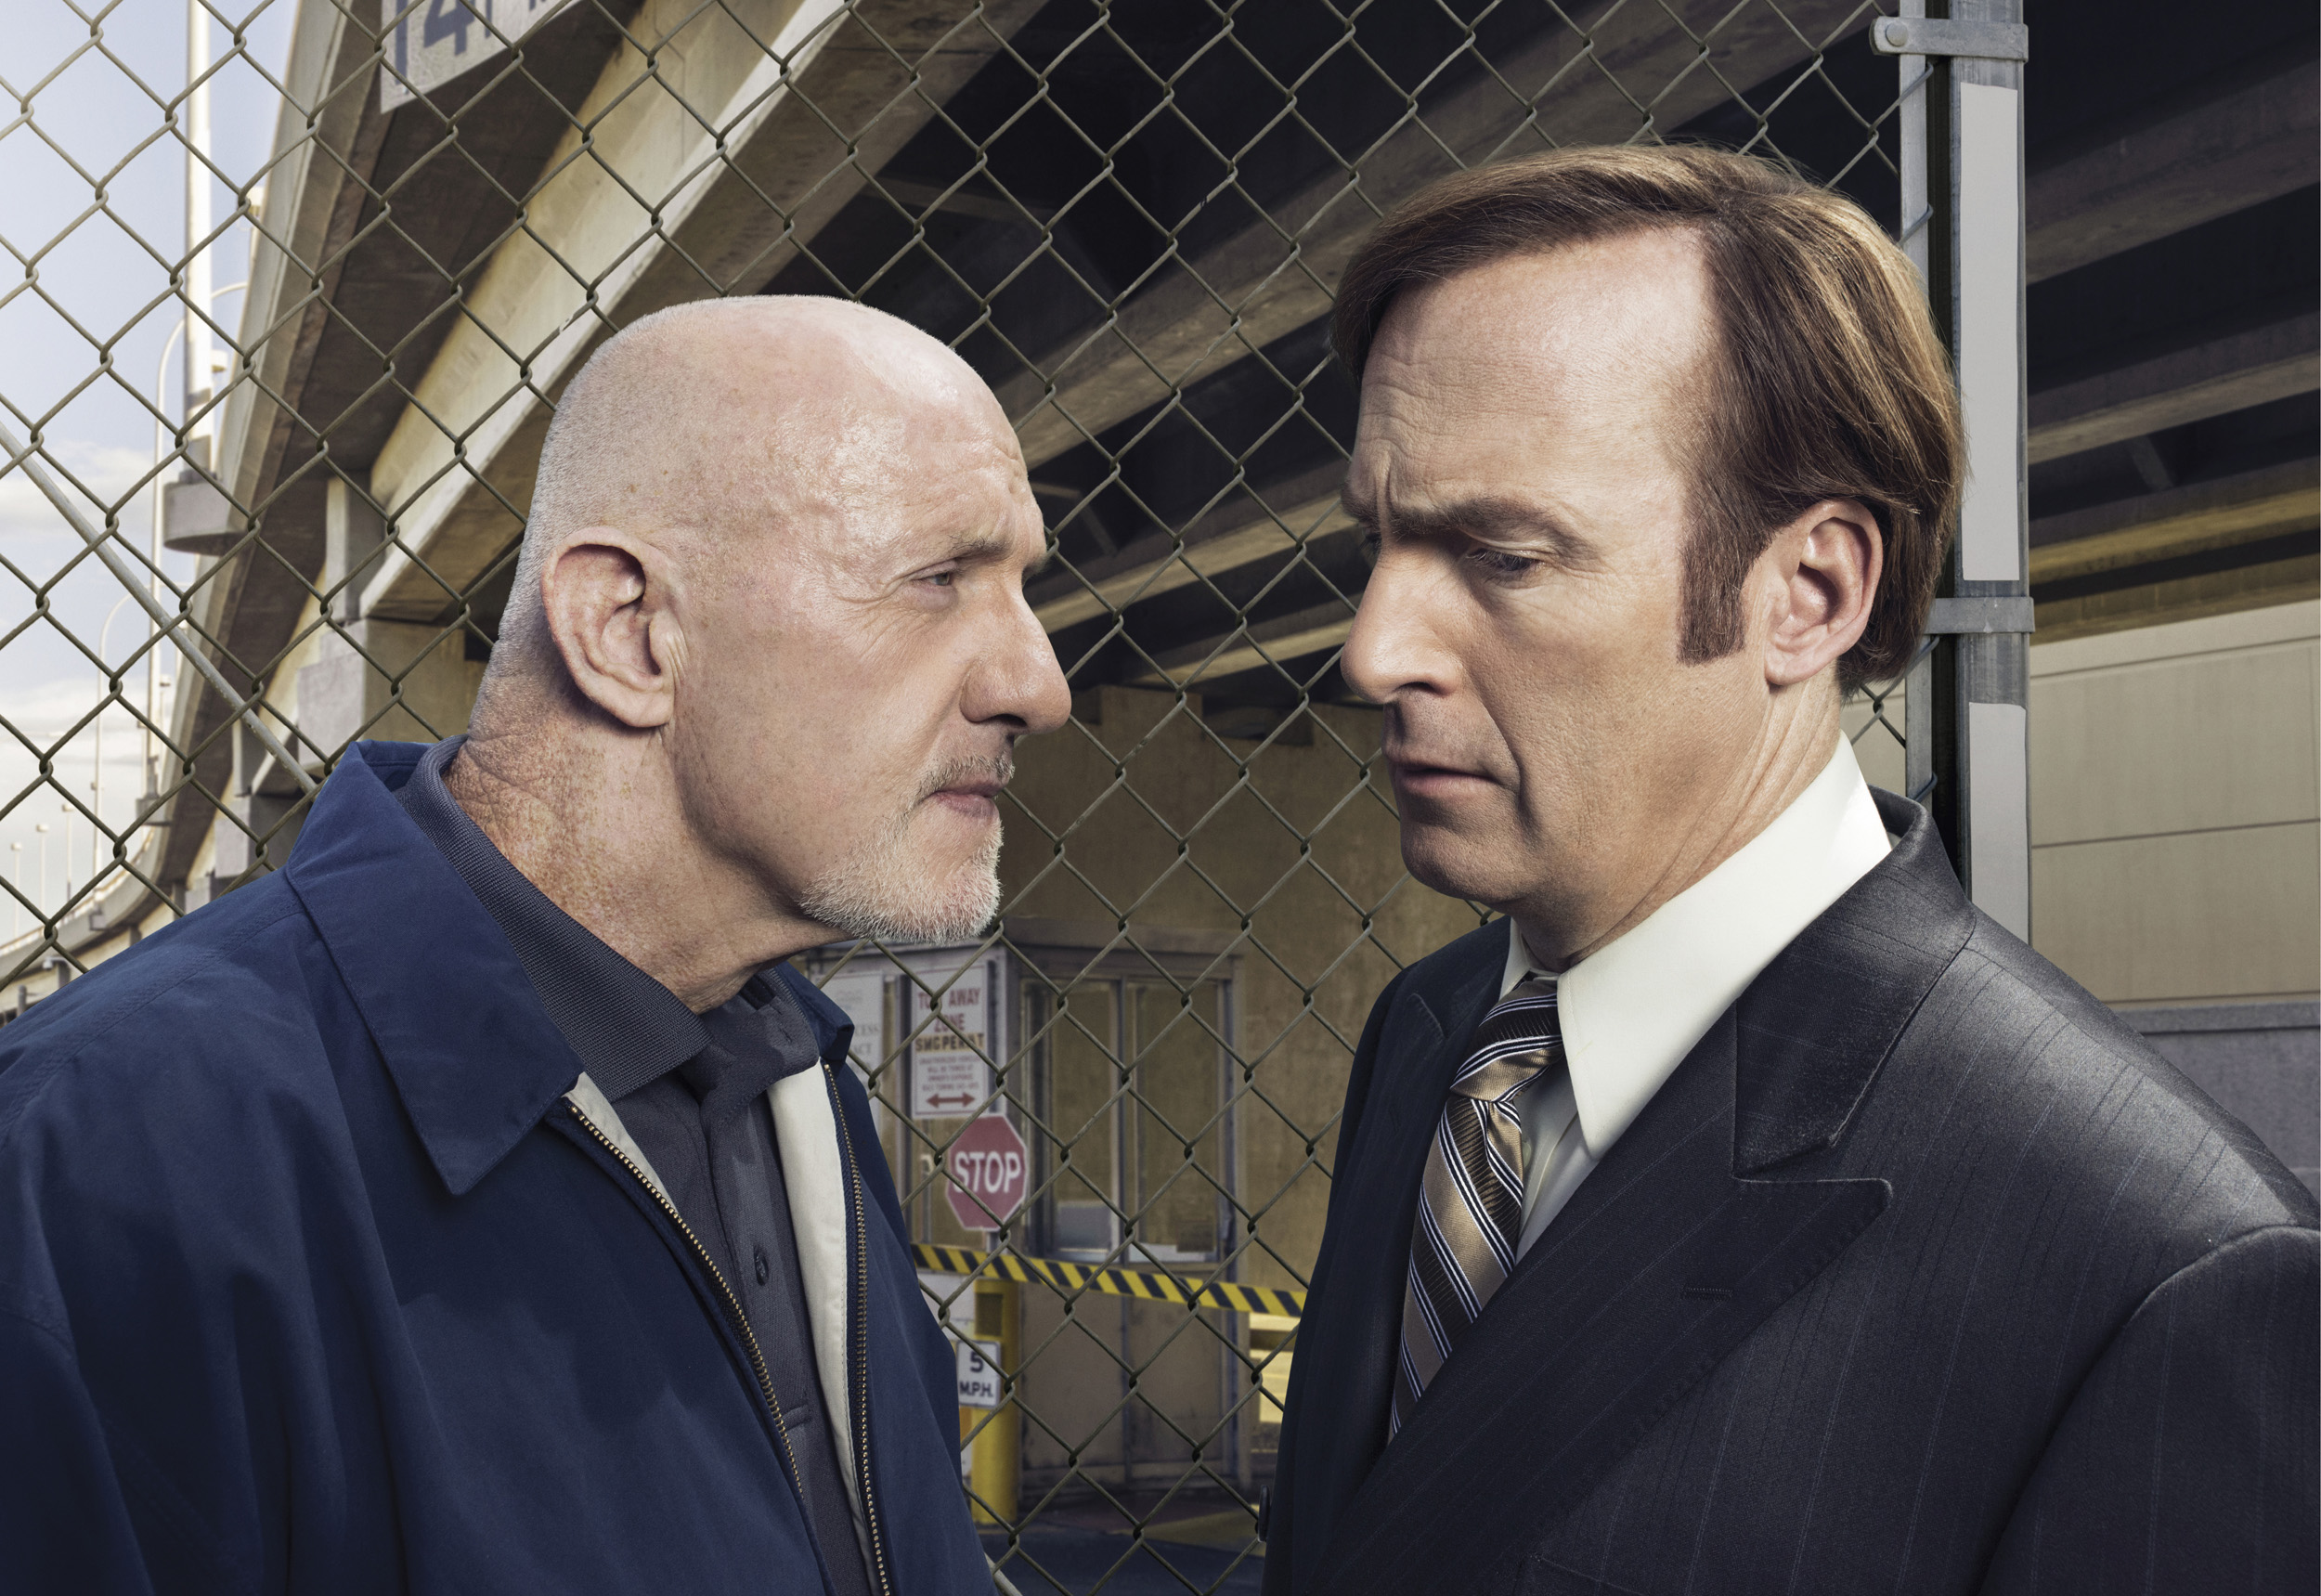 Jonathan Banks as Mike Ehrmantraut and Bob Odenkirk as Saul Goodman in 'Better Call Saul', Season 1.